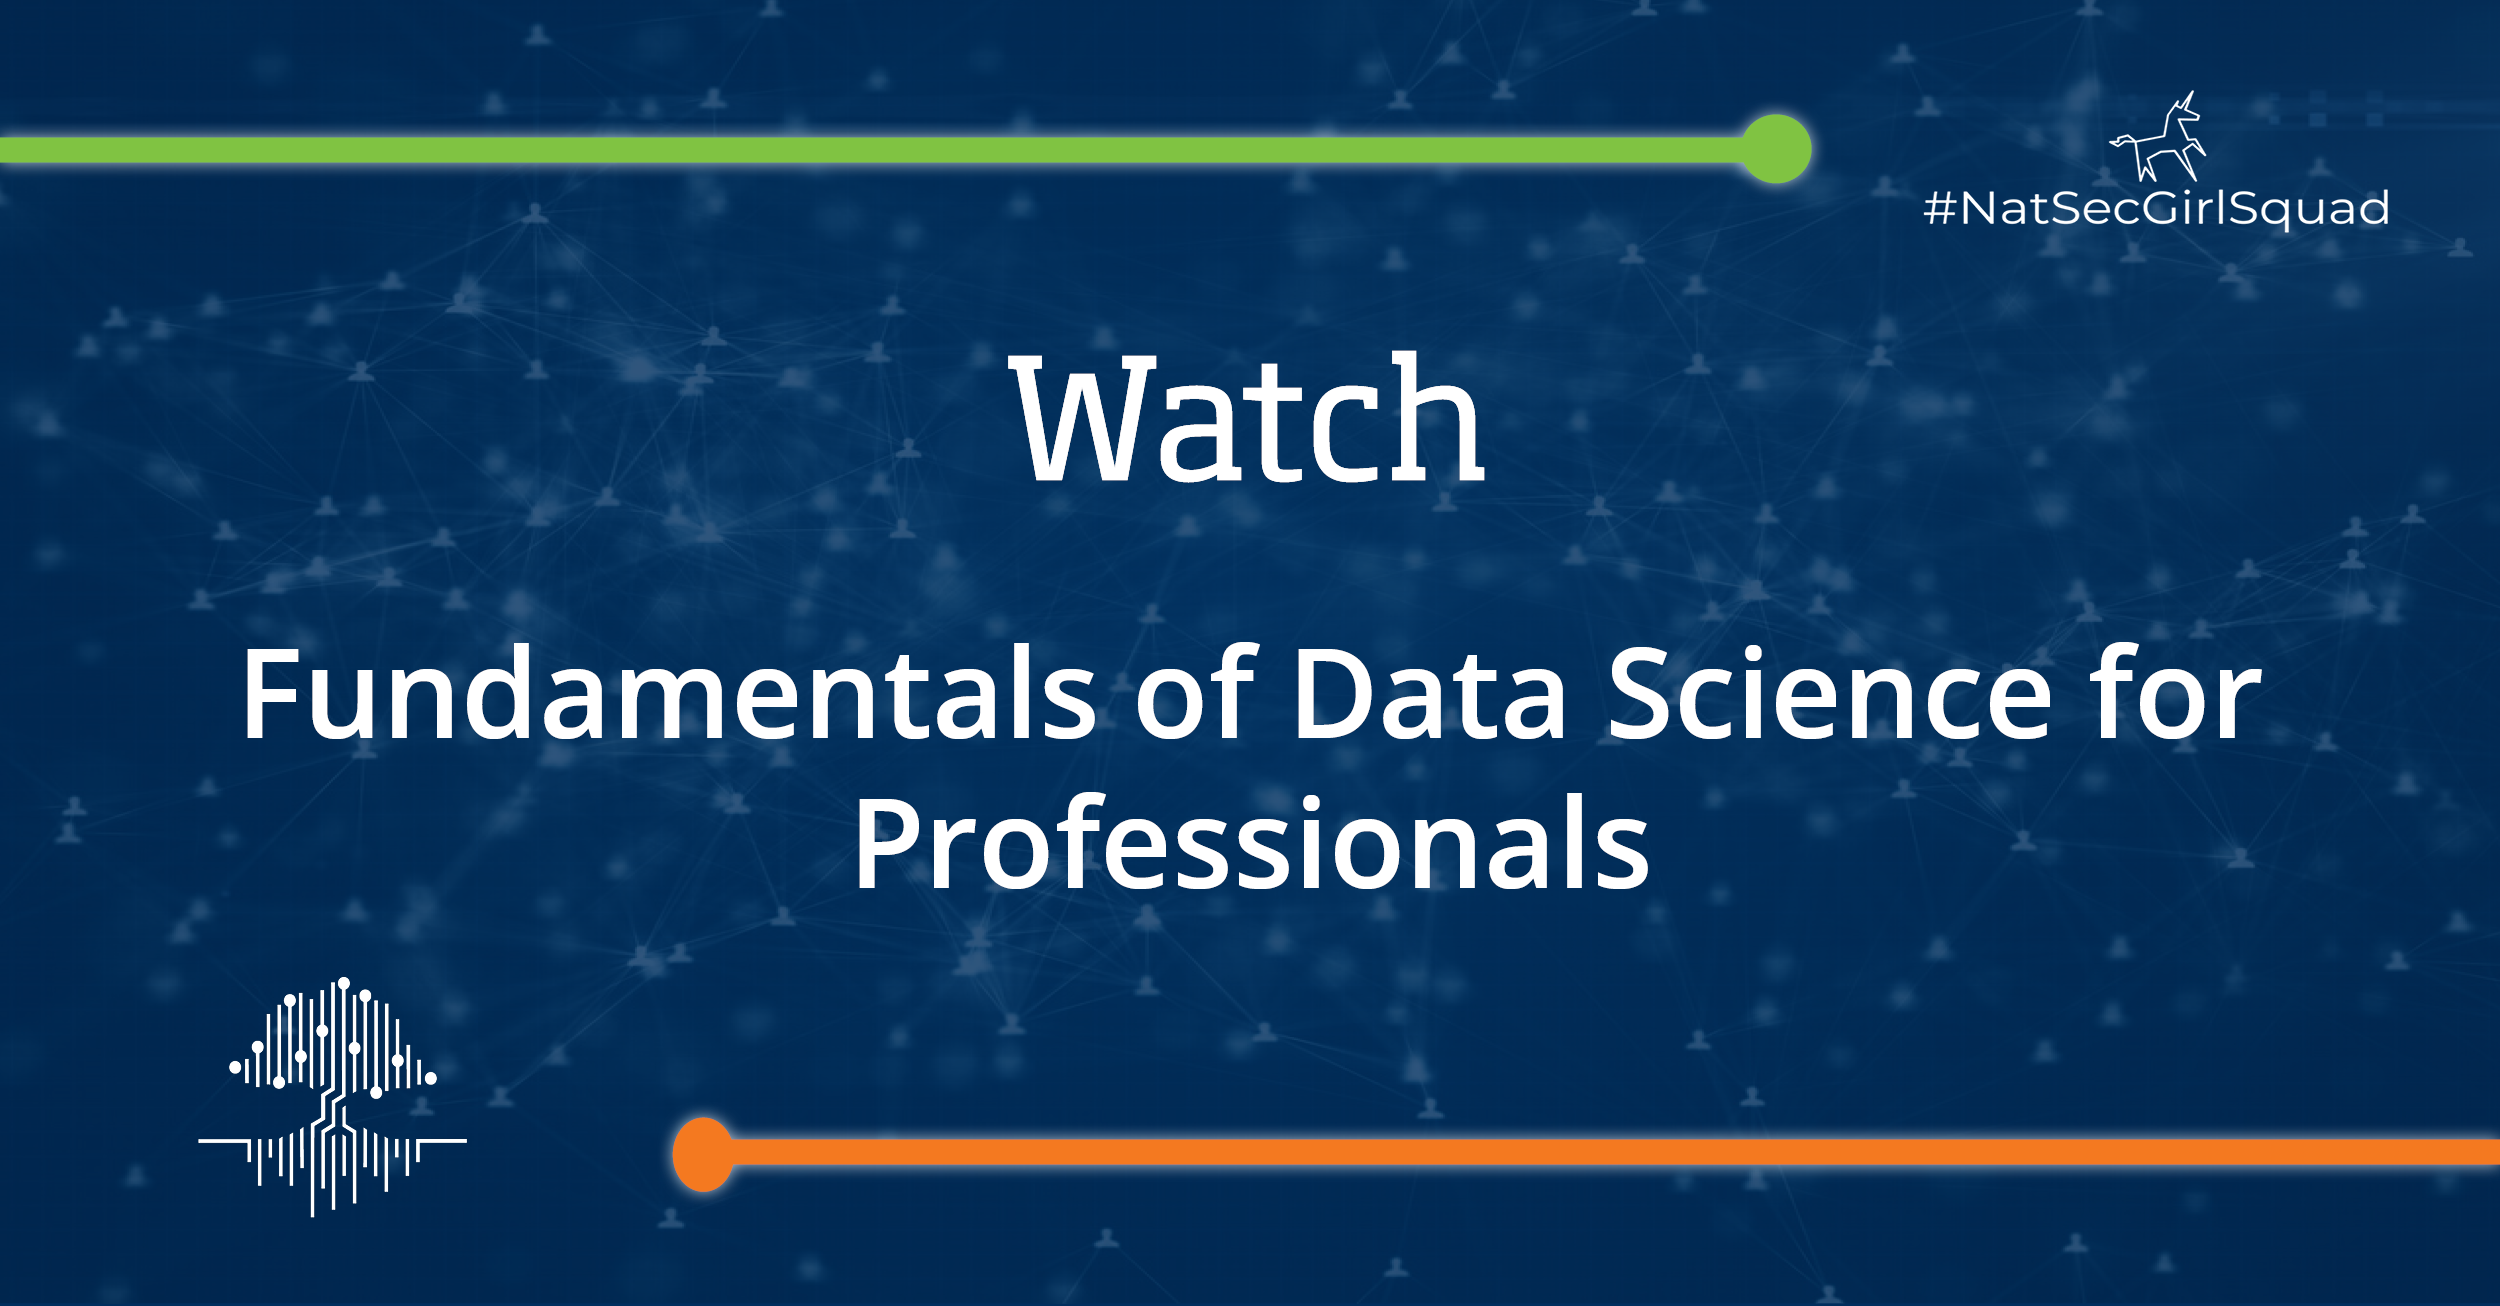 Fundamentals of Data Science for Professionals-20200611 1900-1